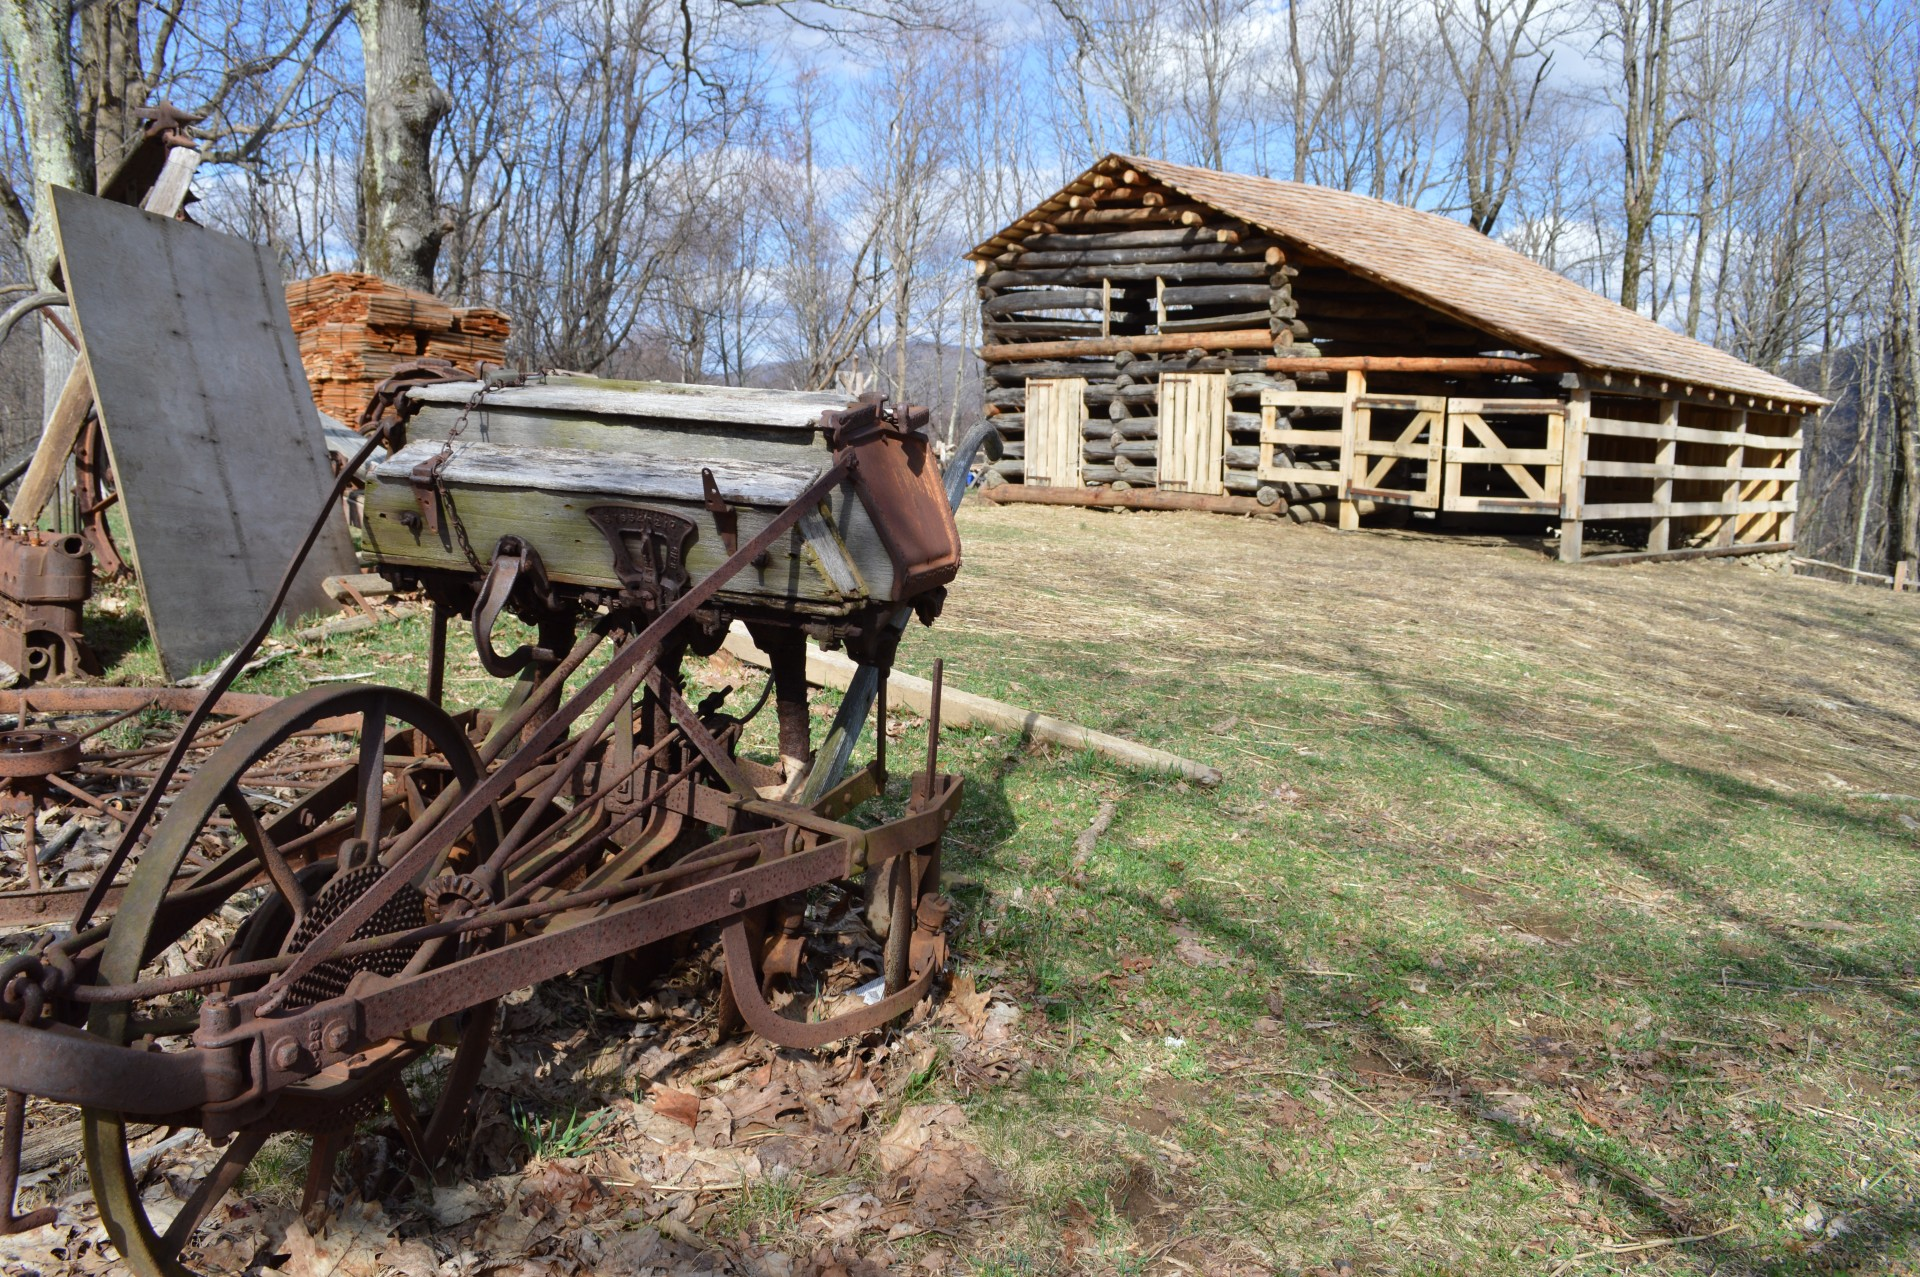 The barn at Johnson Farm at Peaks of Otter on the Blue Ridge Parkway.